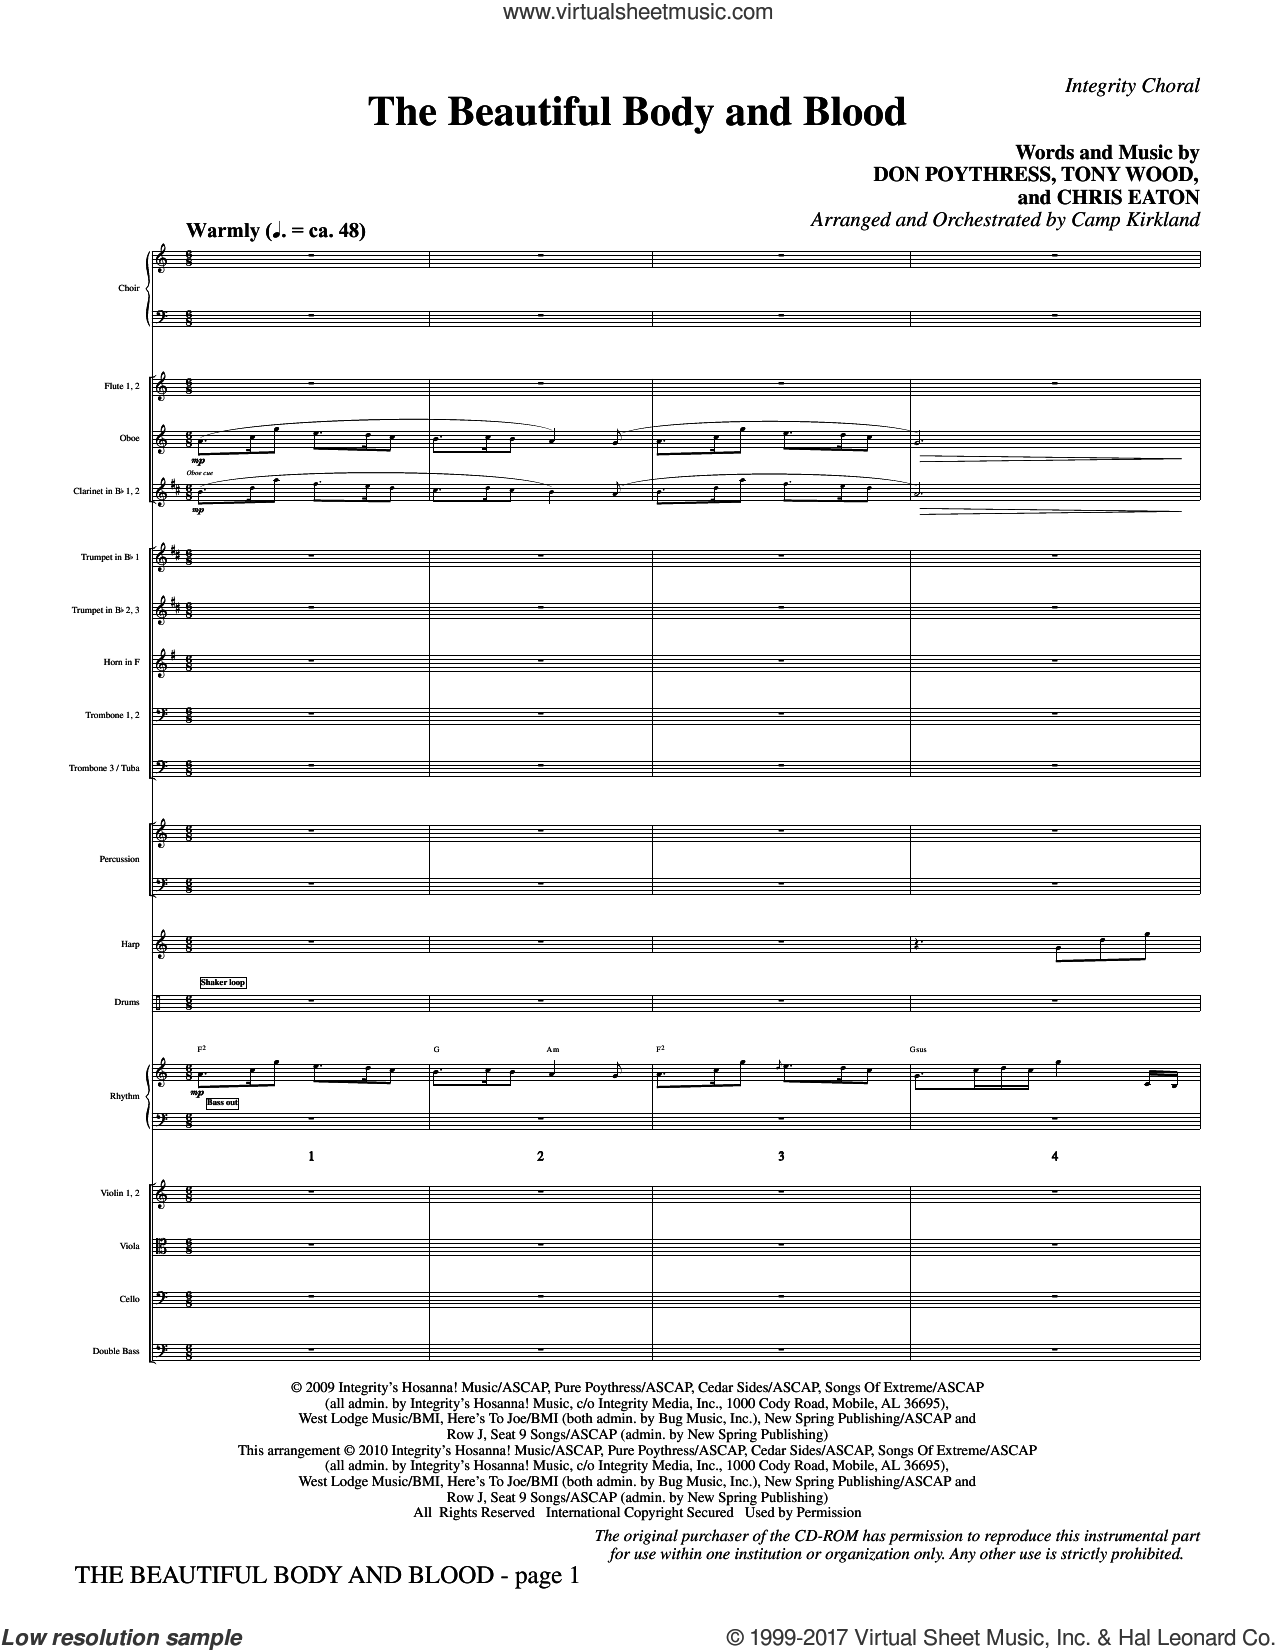 The Beautiful Body And Blood (complete set of parts) sheet music for orchestra/band (Orchestra) by Camp Kirkland, Chris Eaton, Don Poythress and Tony Wood, intermediate skill level